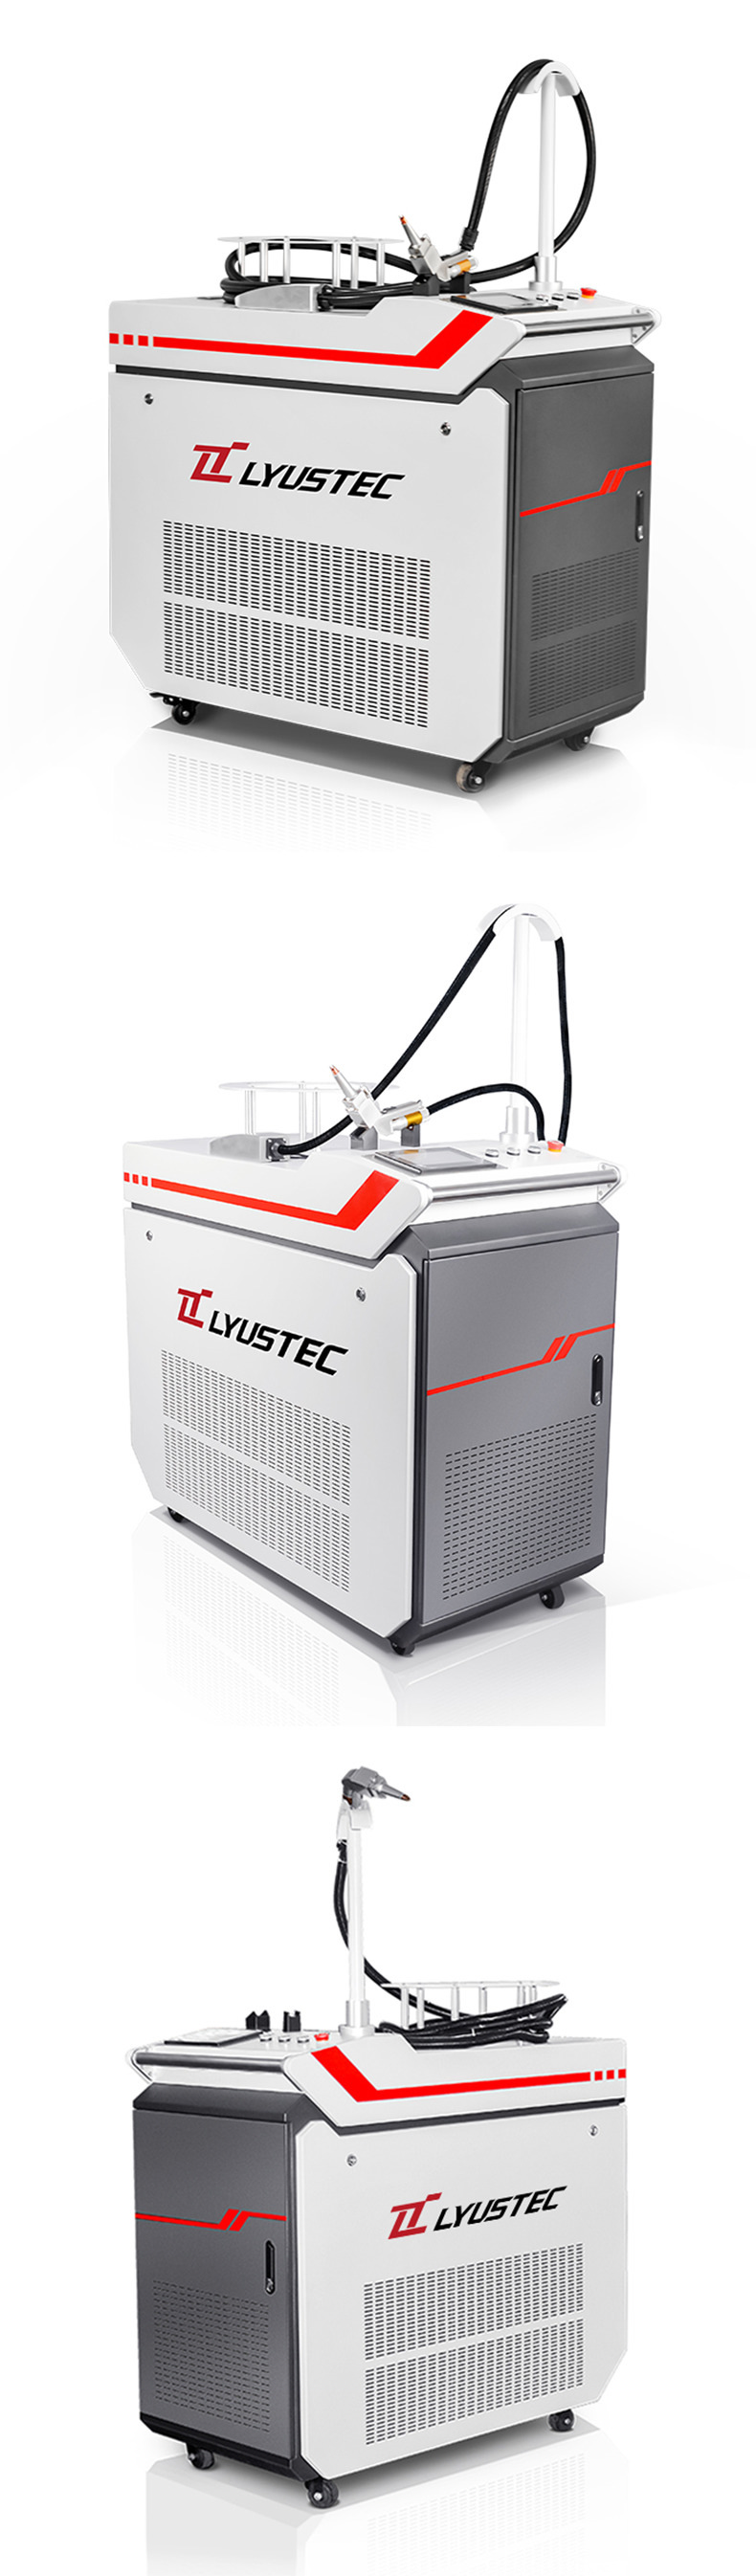 handheld laser welding machine